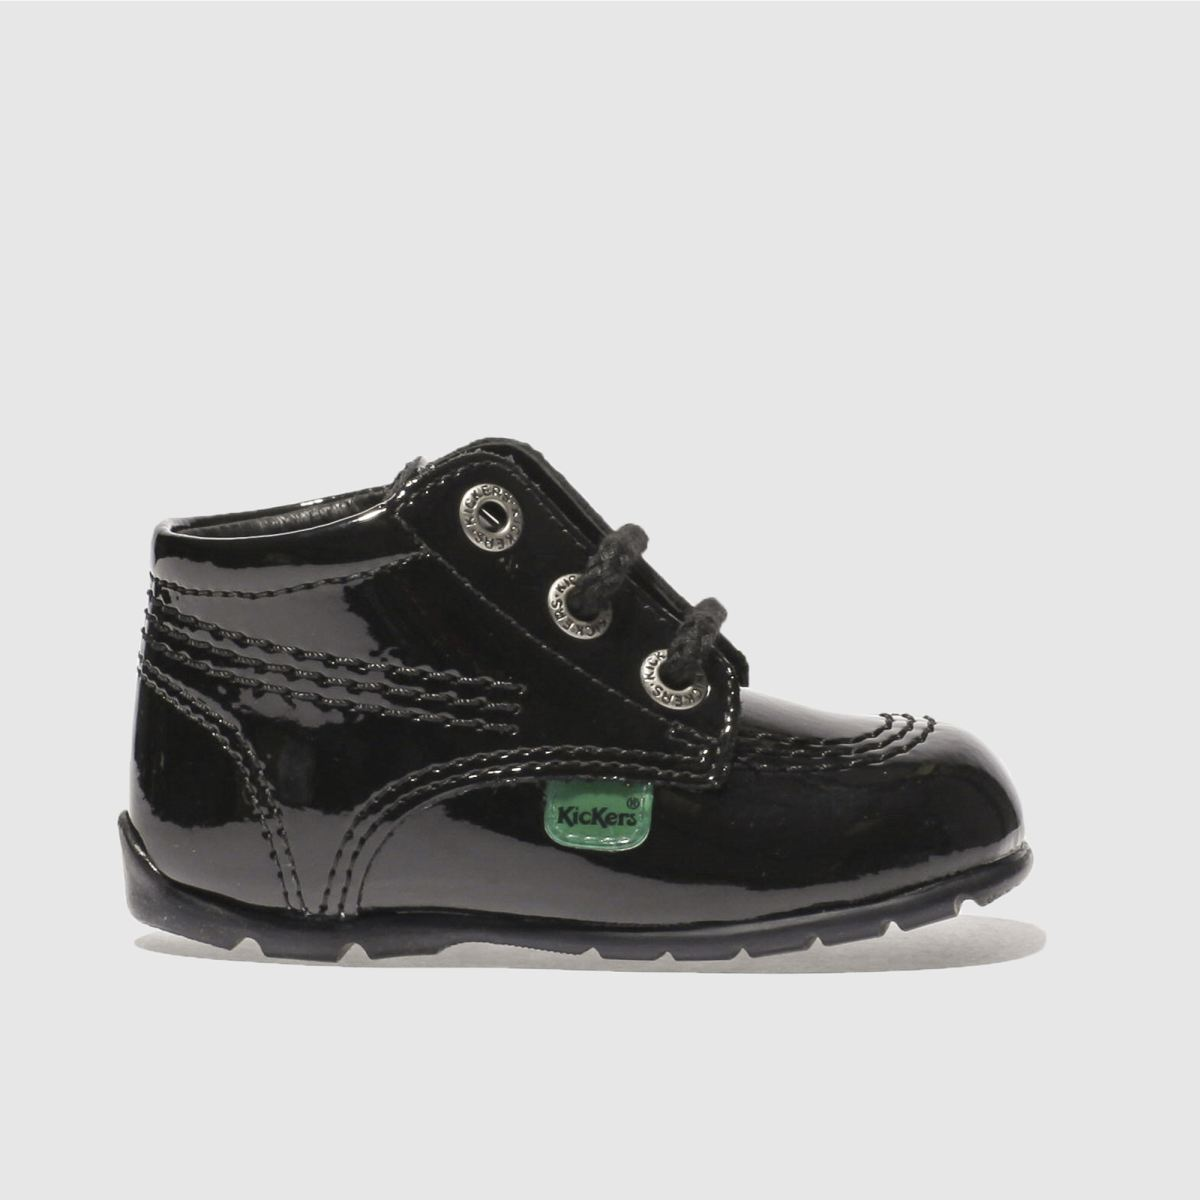 kickers black kick hi Boys Baby Boots